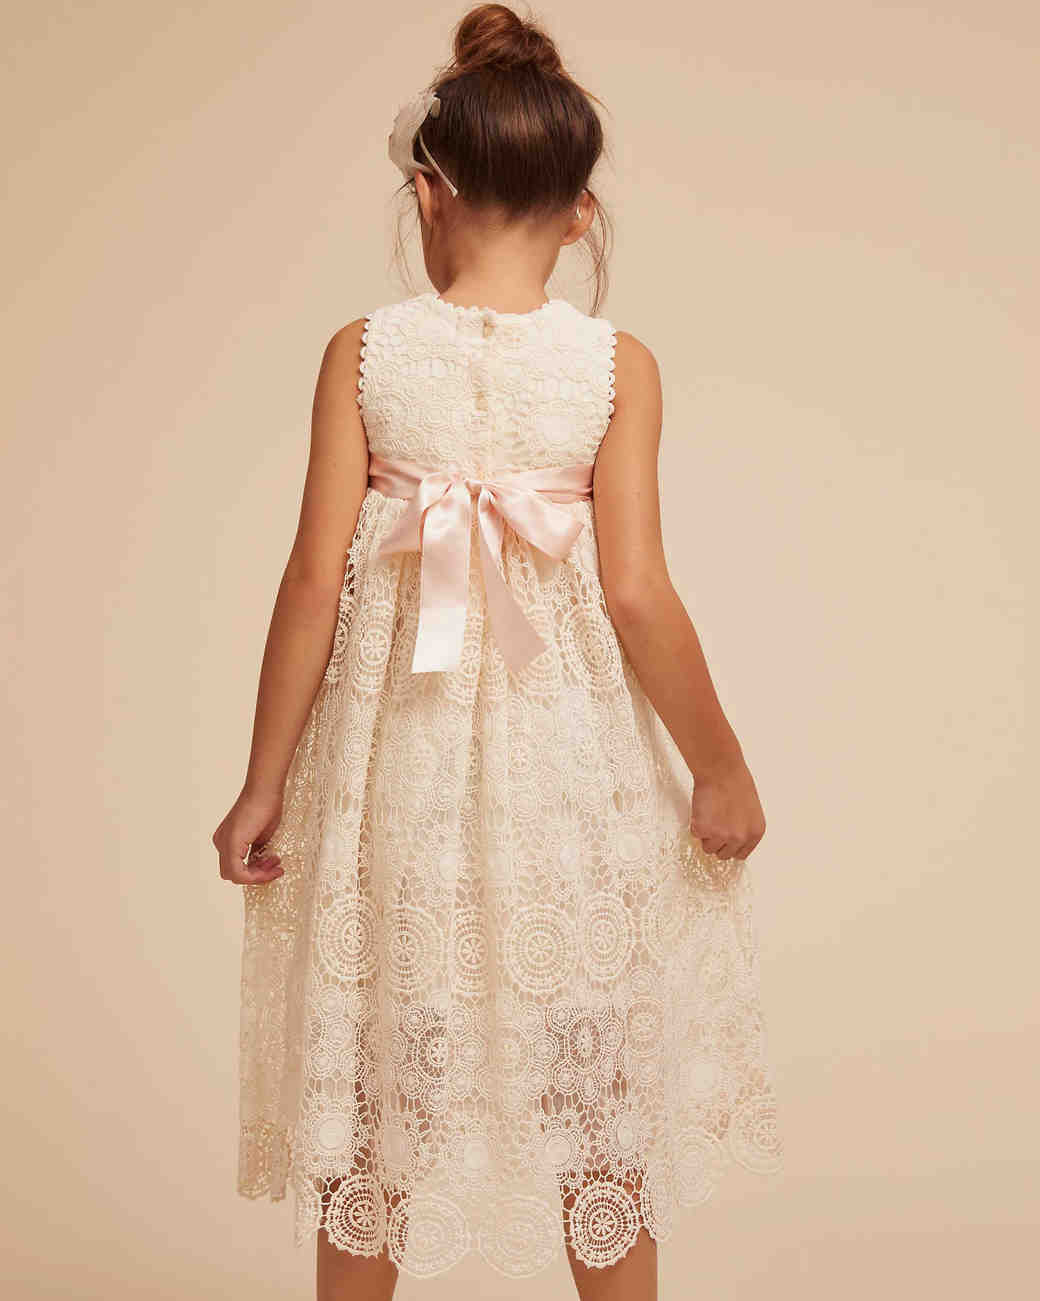 35ed8ebe4 30 Adorable Flower Girl Dresses with Bows | Martha Stewart Weddings